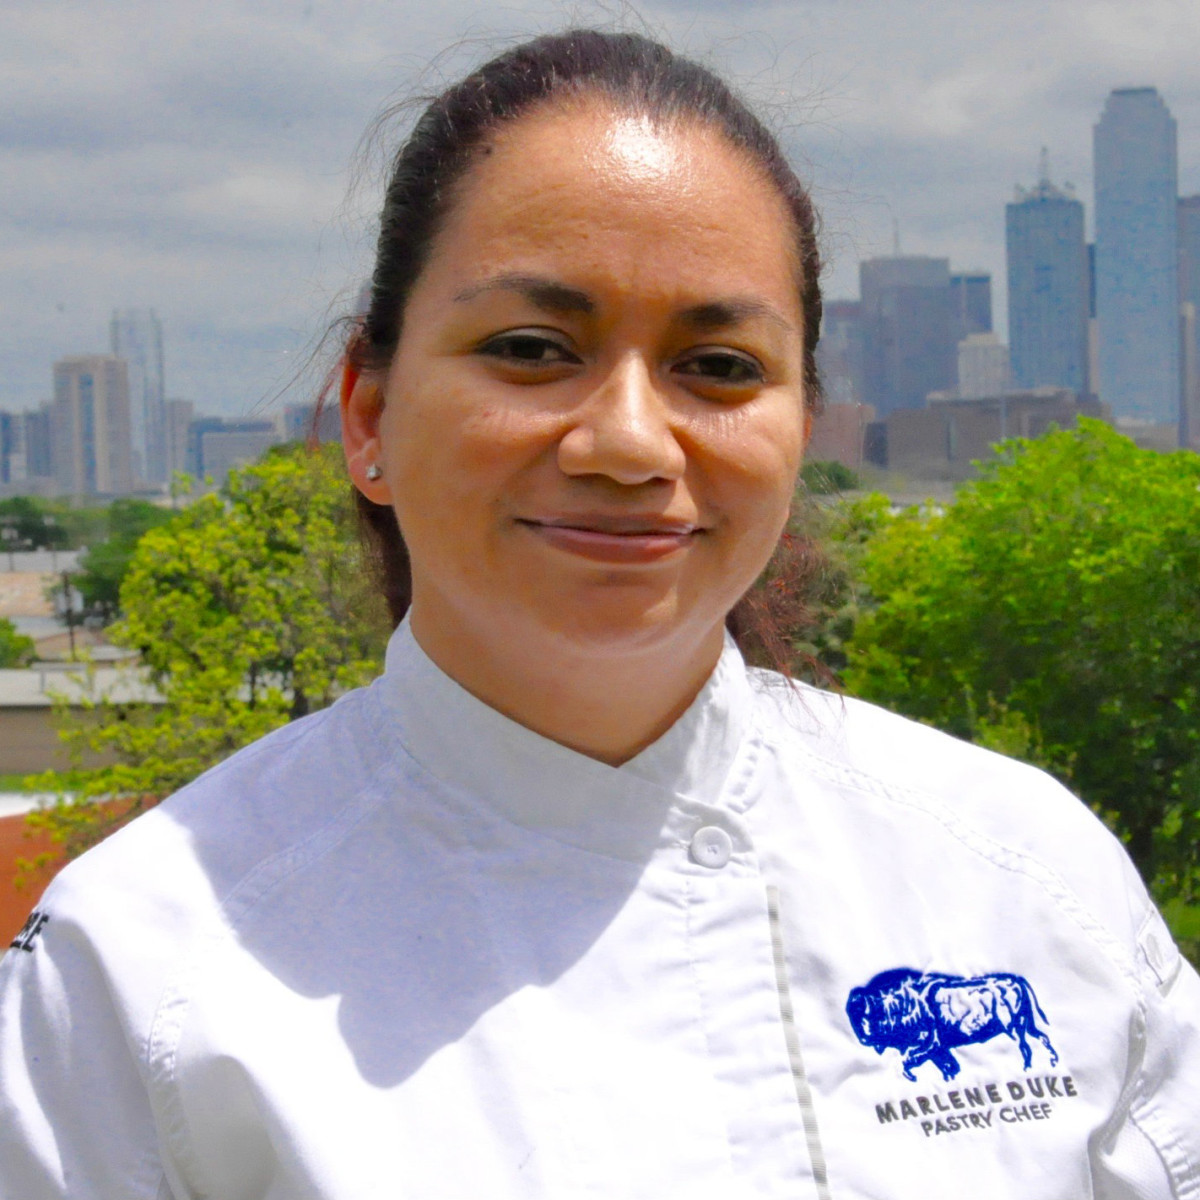 Pastry chef Marlene Duke